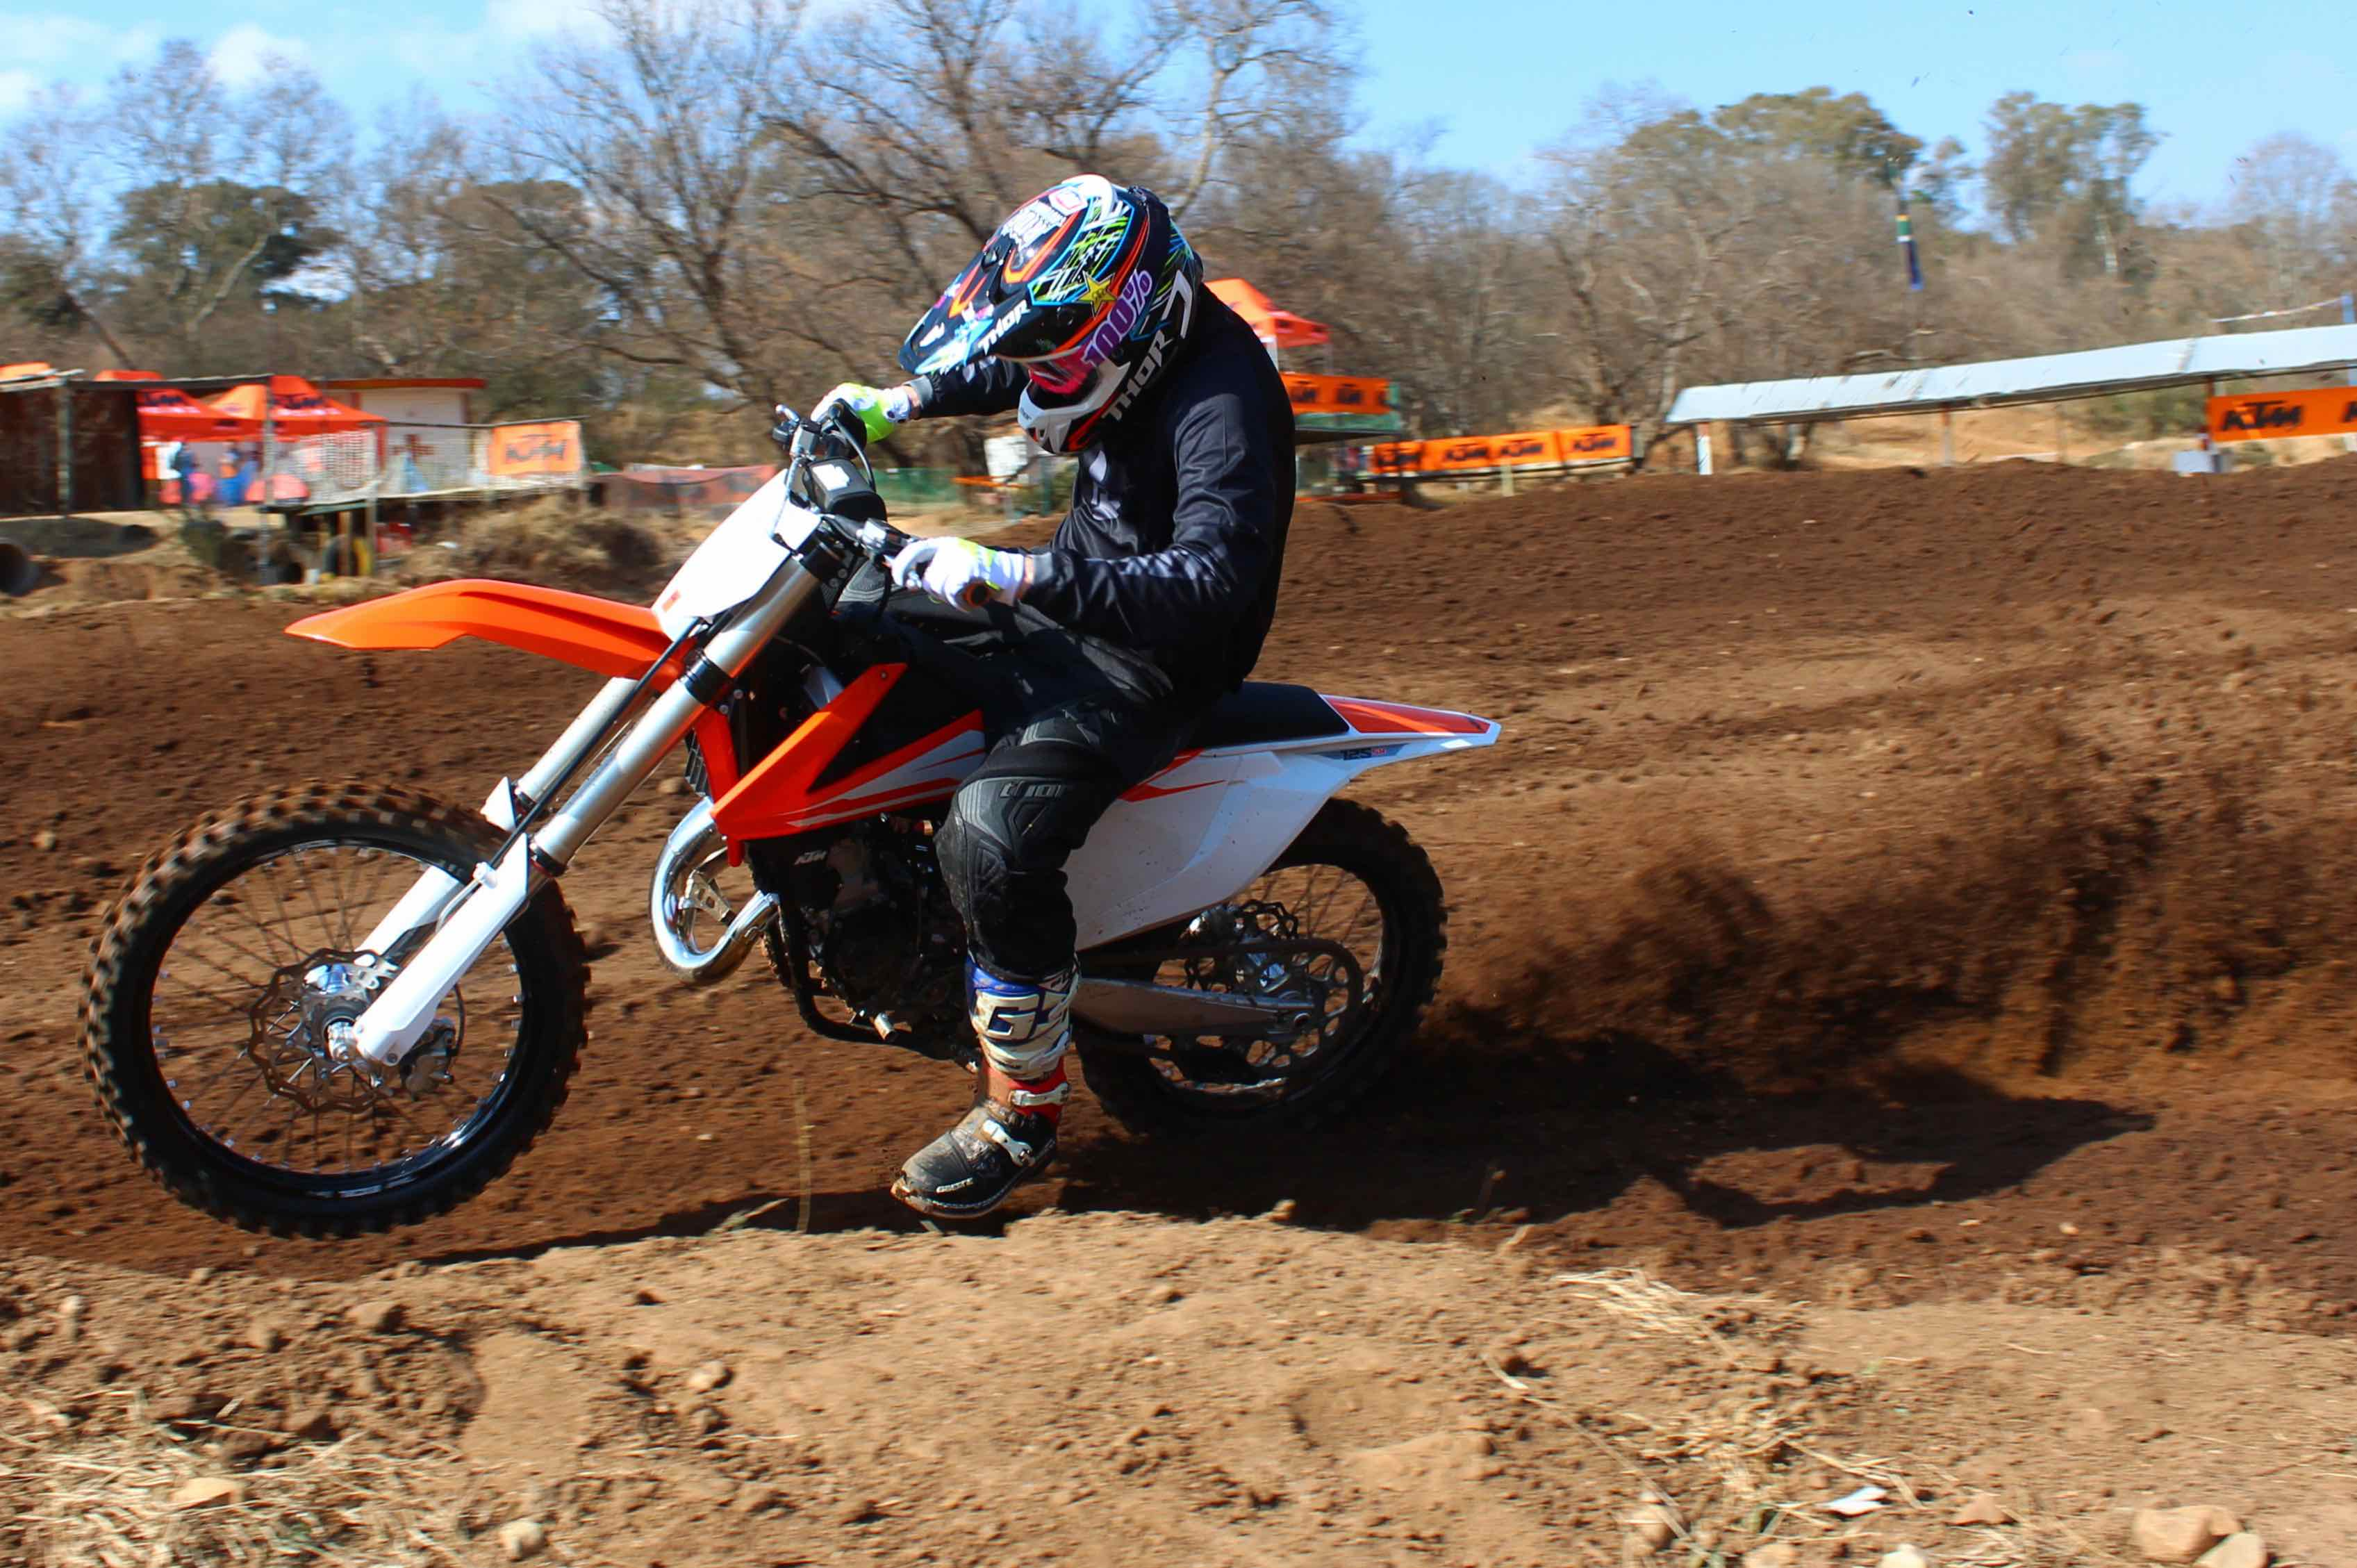 Couper Testing Out The 2016 Ktm 125 Sx Motocross Bikes